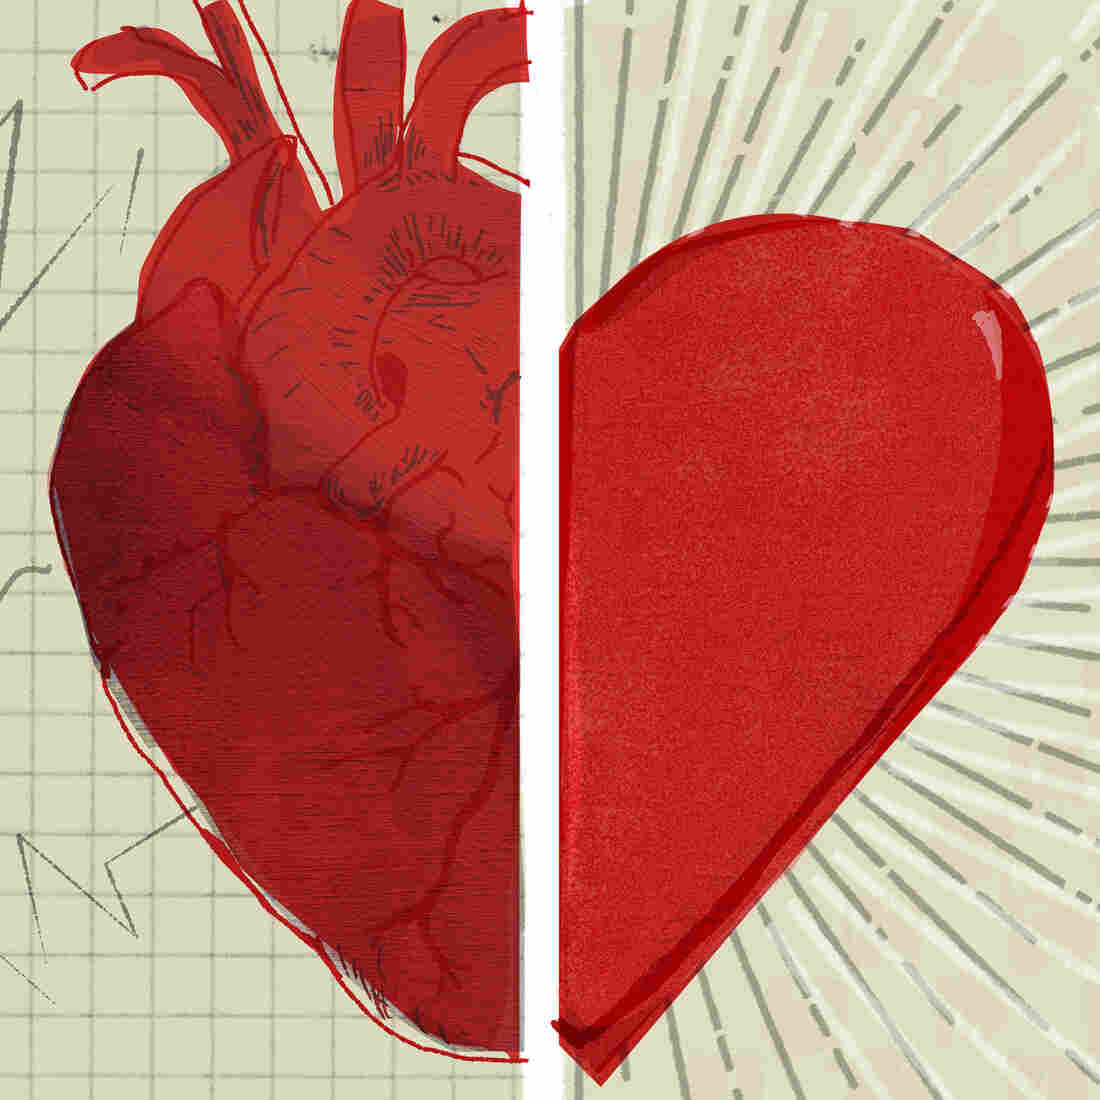 Heart Of The Matter: Treating The Disease Instead Of The Person